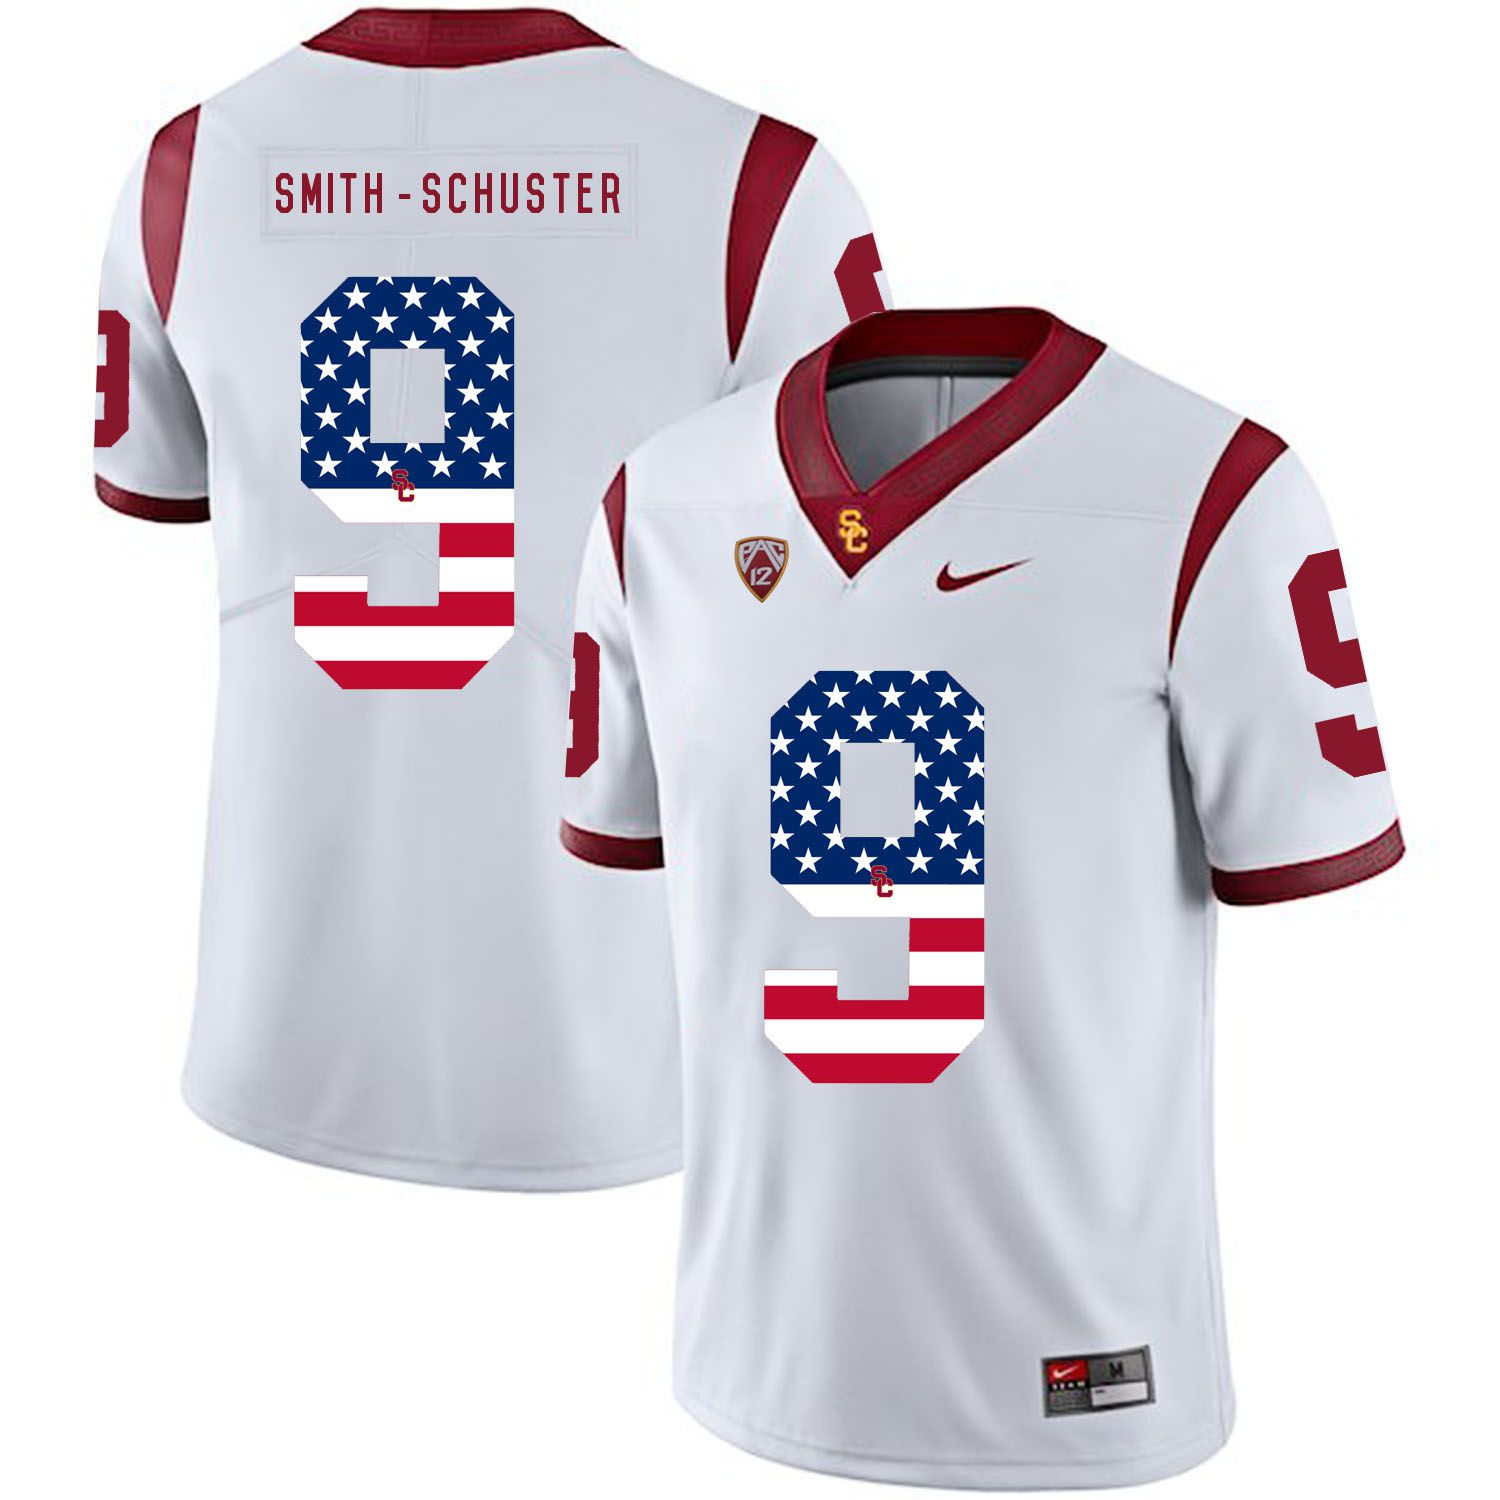 Men USC Trojans 9 Smith-Schuster White Flag Customized NCAA Jerseys